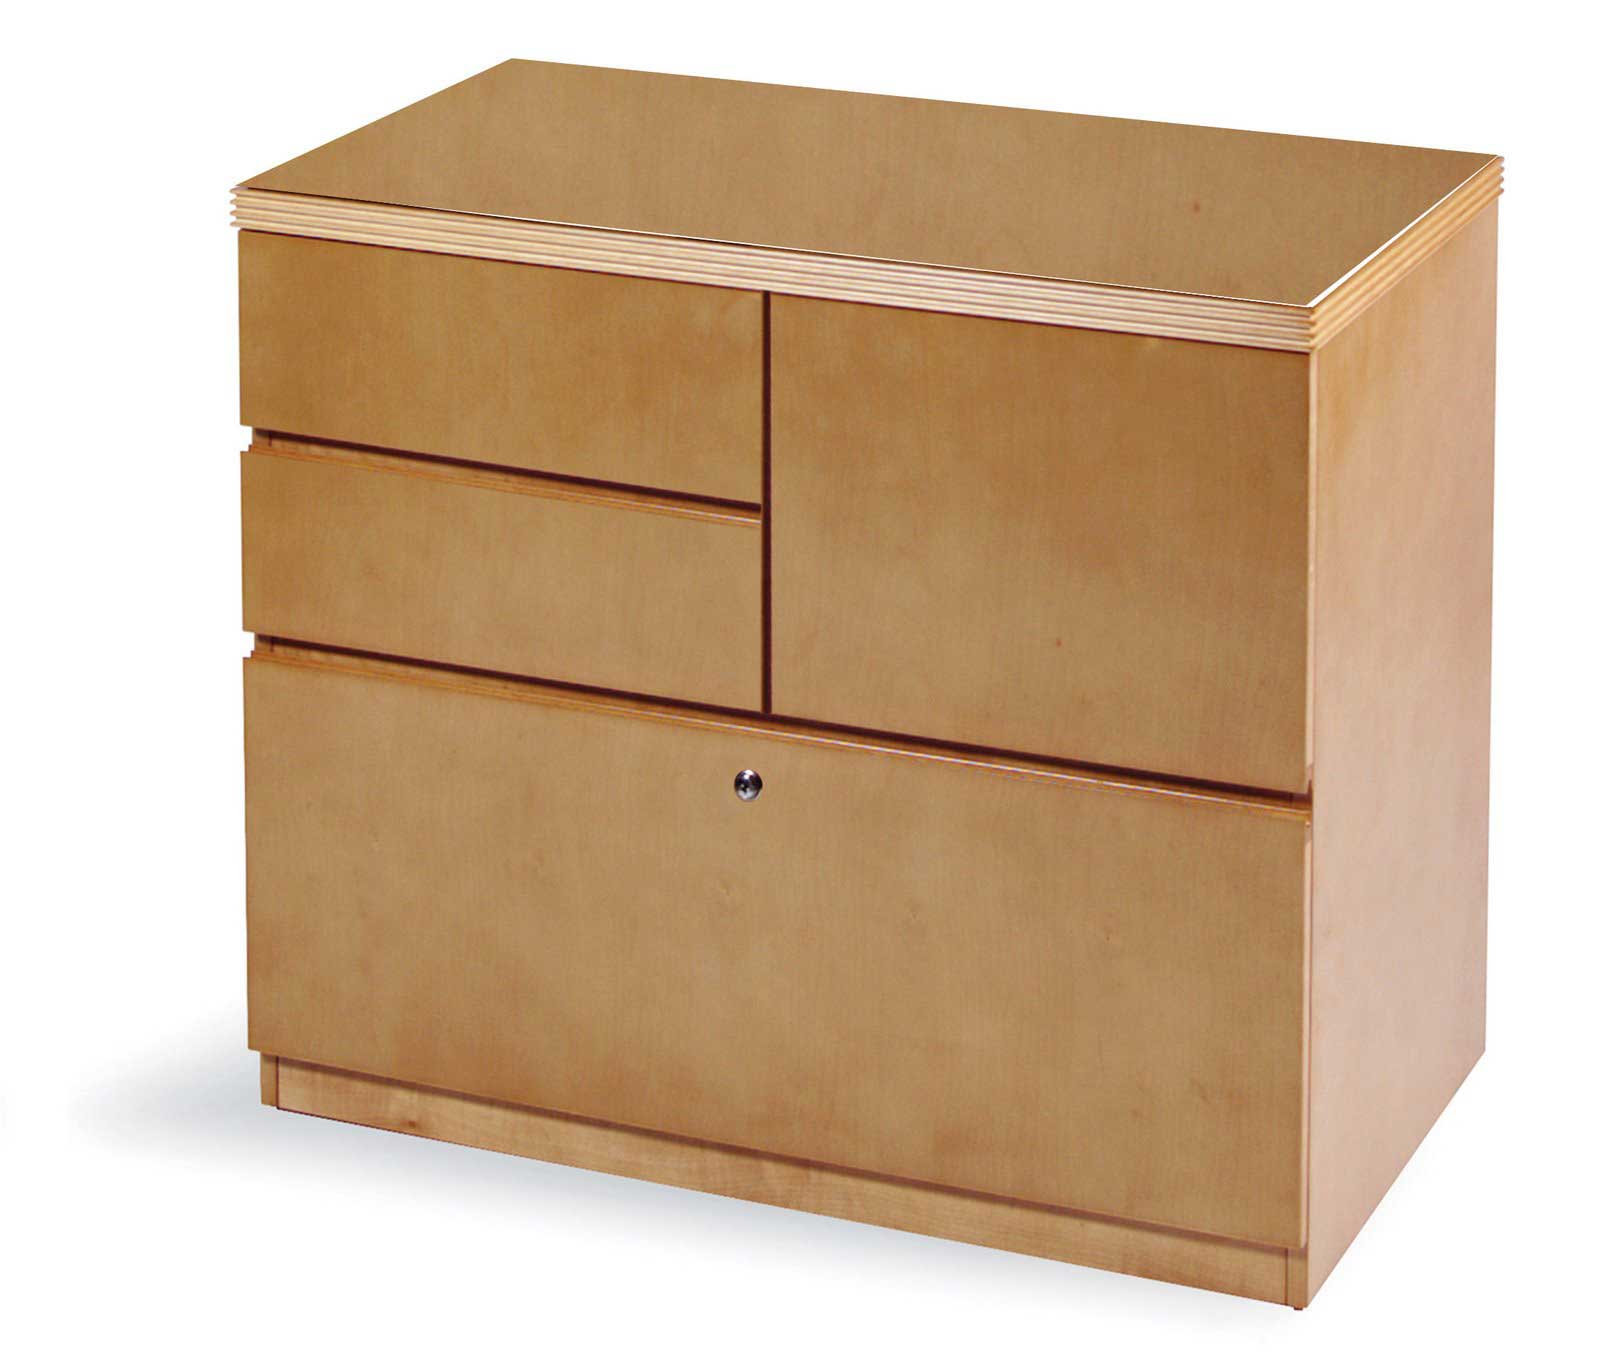 Wooden discount filing cabinet with lock for Inexpensive wood kitchen cabinets